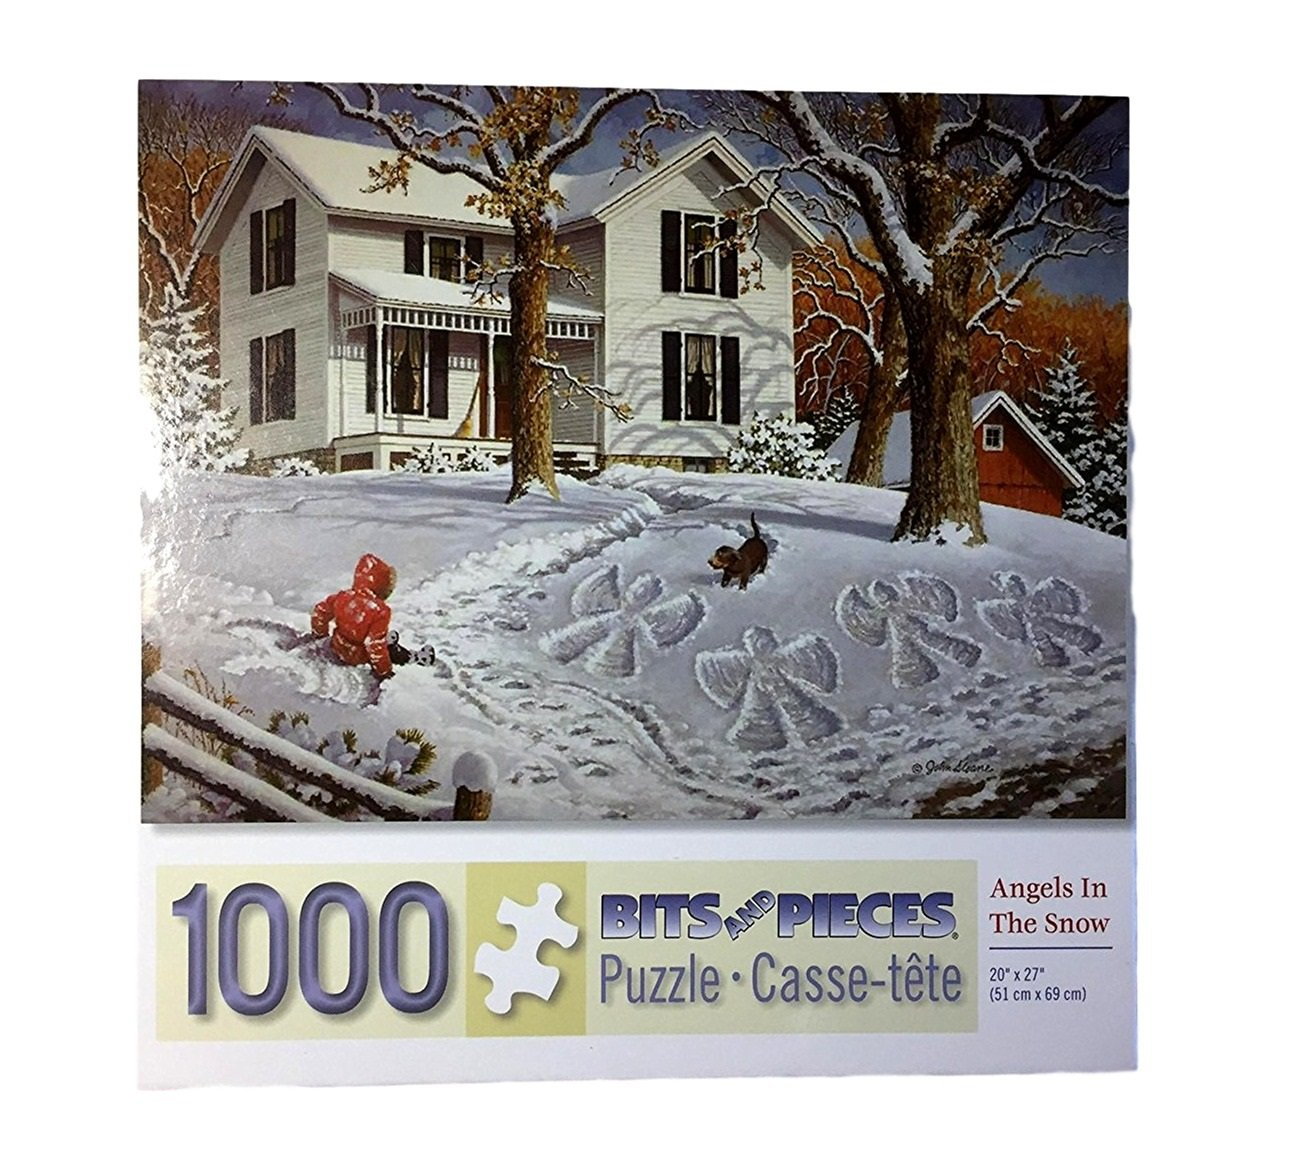 Studio 1000 Piece Puzzle: Angels in the Snow by John Sloane